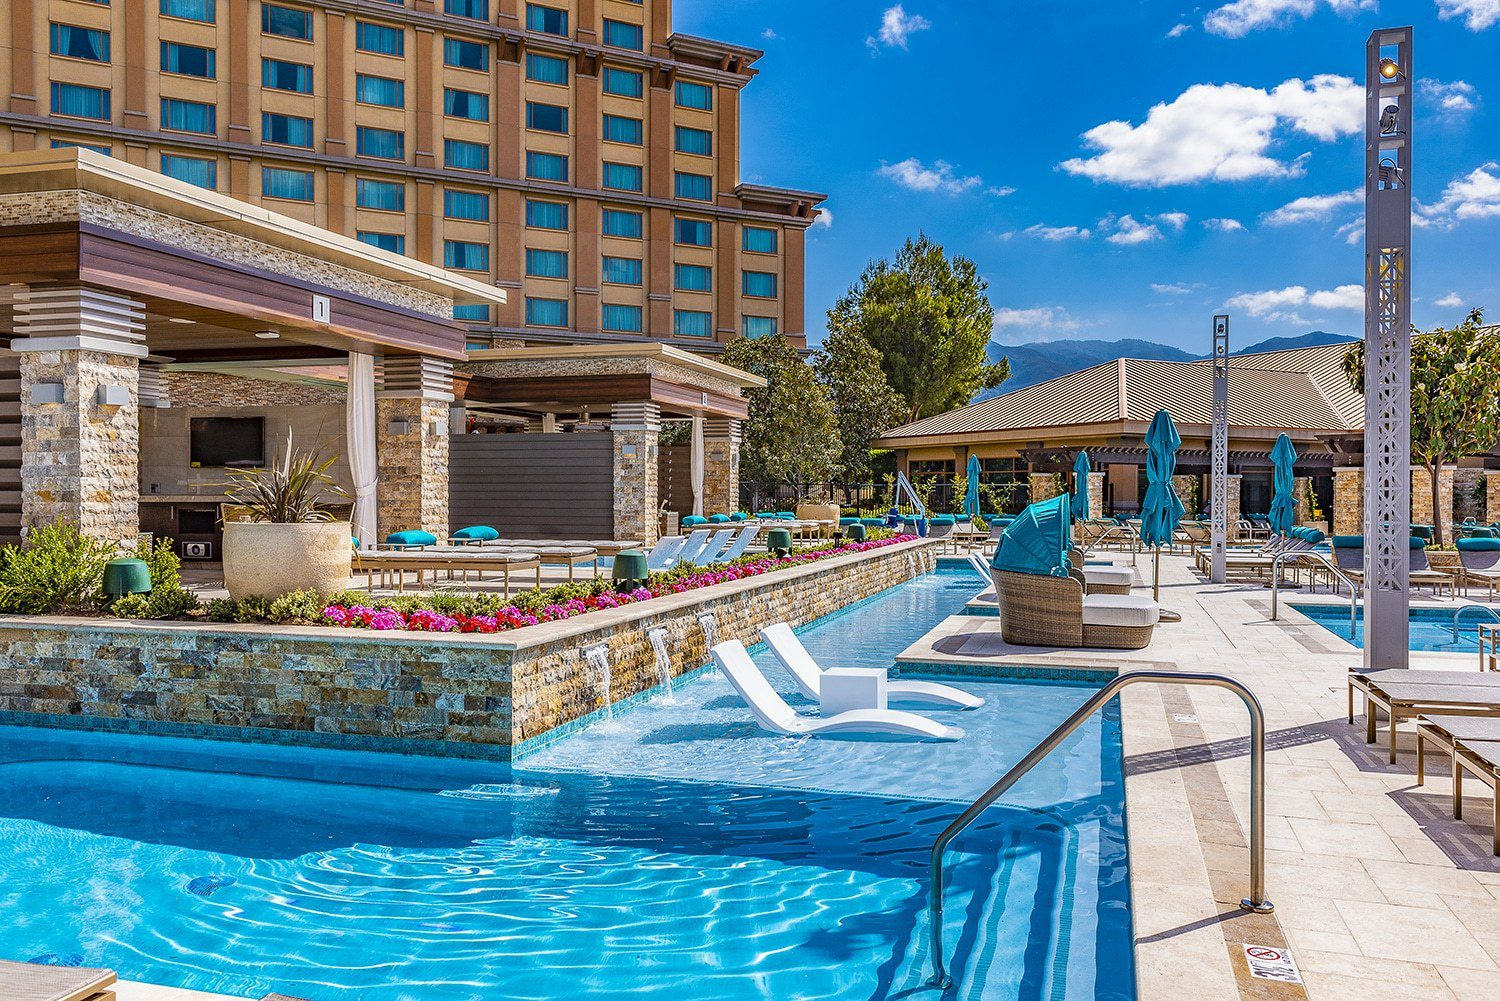 The Pala Casino Spa & Resort's New Pool Complex 7